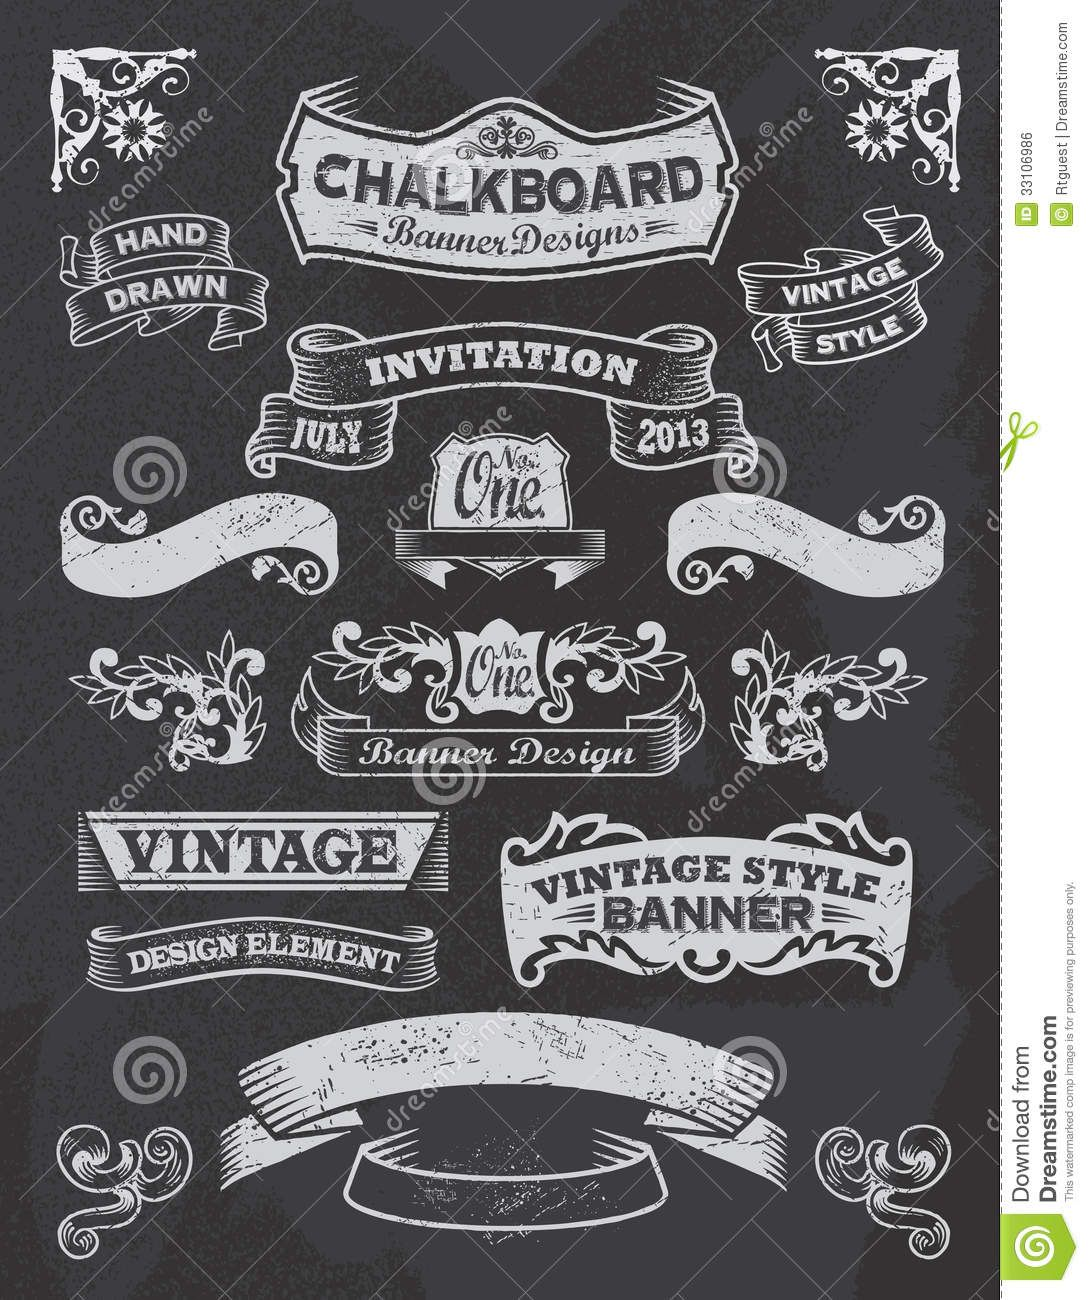 chalkboard banners free download chalkboard banner and ribbon